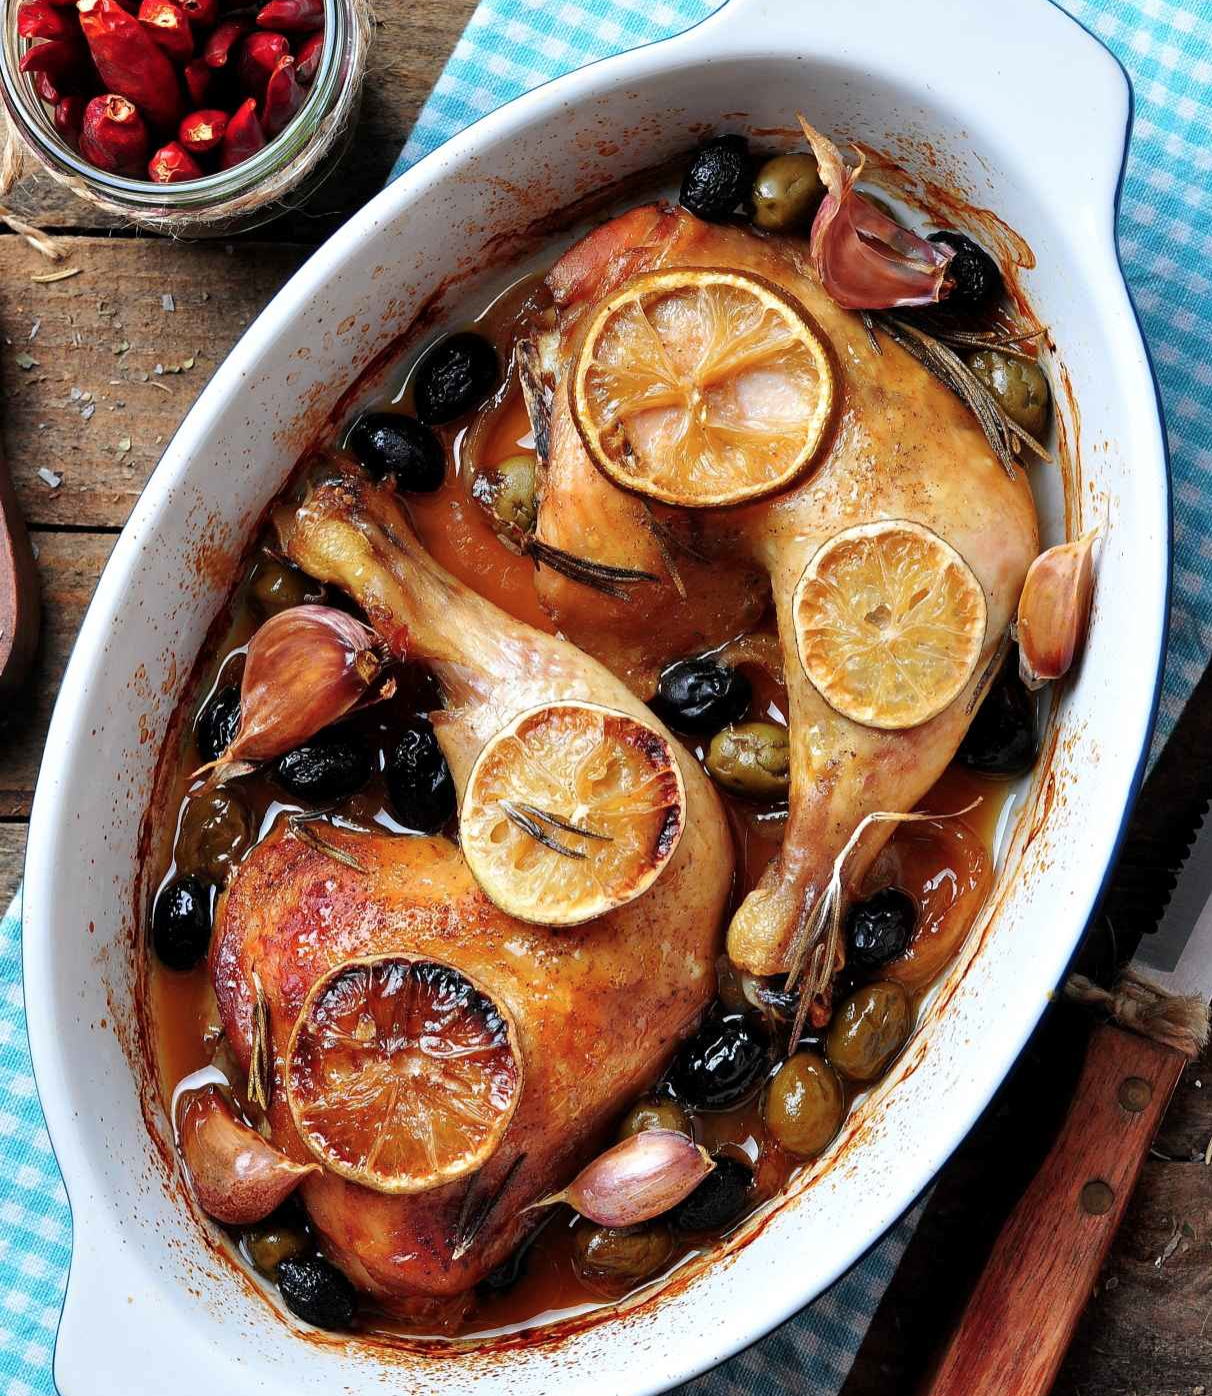 Joyofkosher's Chicken with prunes apricots and olives by Tamar Genger